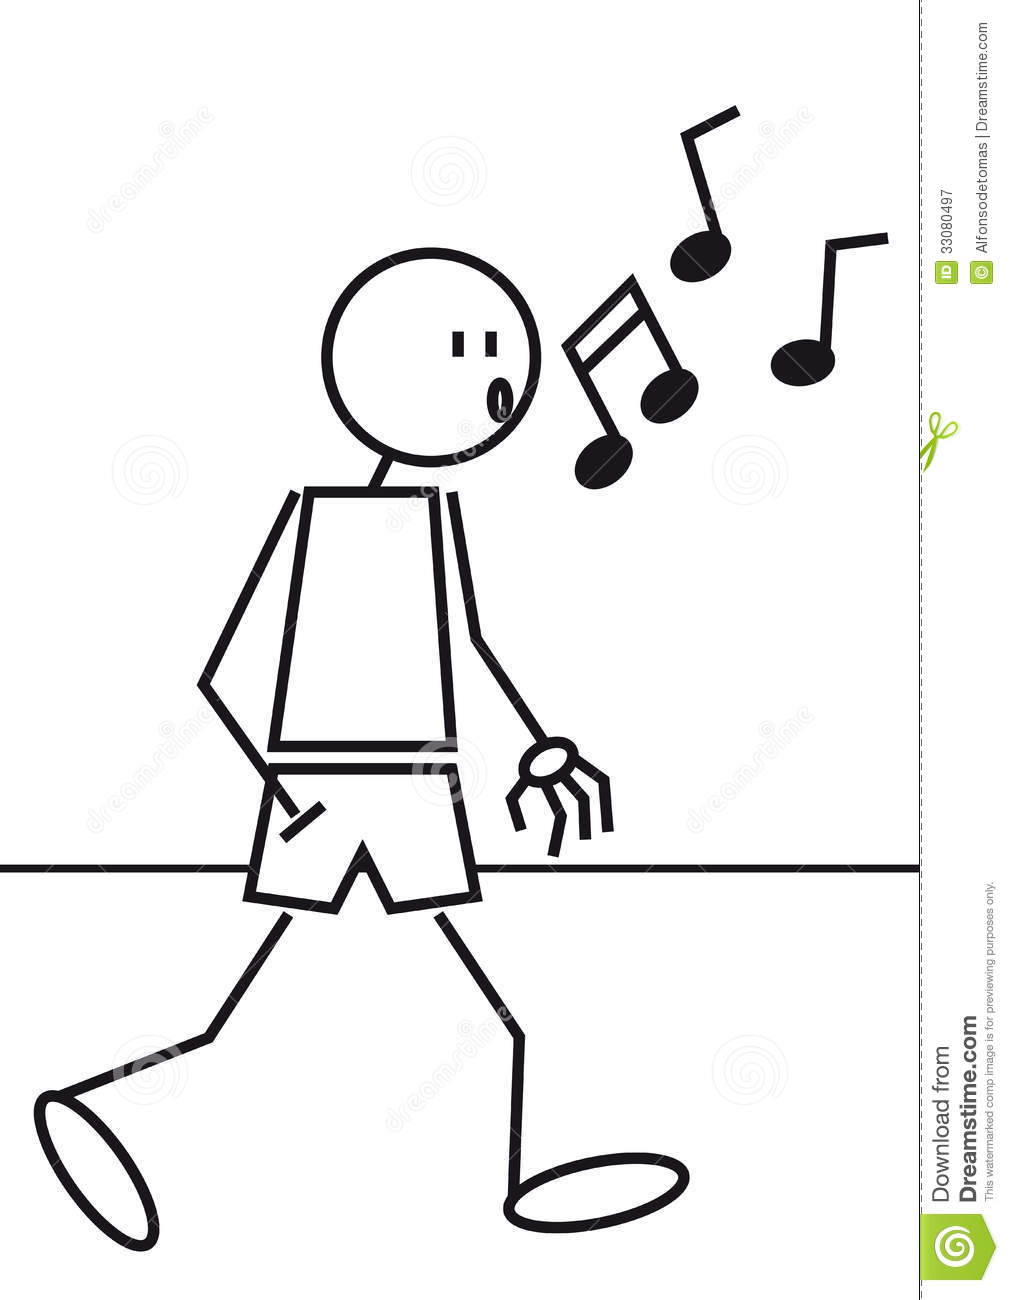 Stick Figure Whistling Royalty Free Stock Photography - Image ...